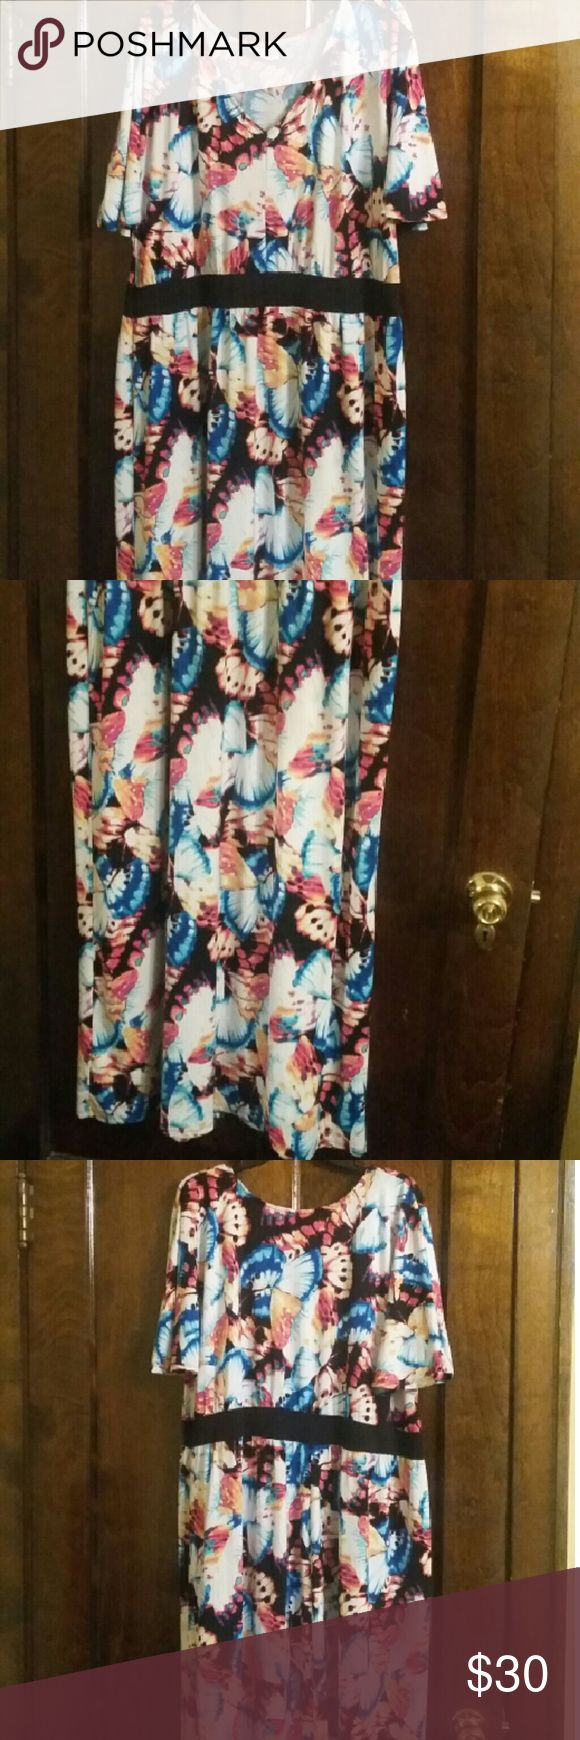 Ashley Stewart dress Ashley Stewart maxi dress with butterfly wings all over it. This dress is in great condition. It's a size 22/24. Ashley Stewart Dresses Maxi